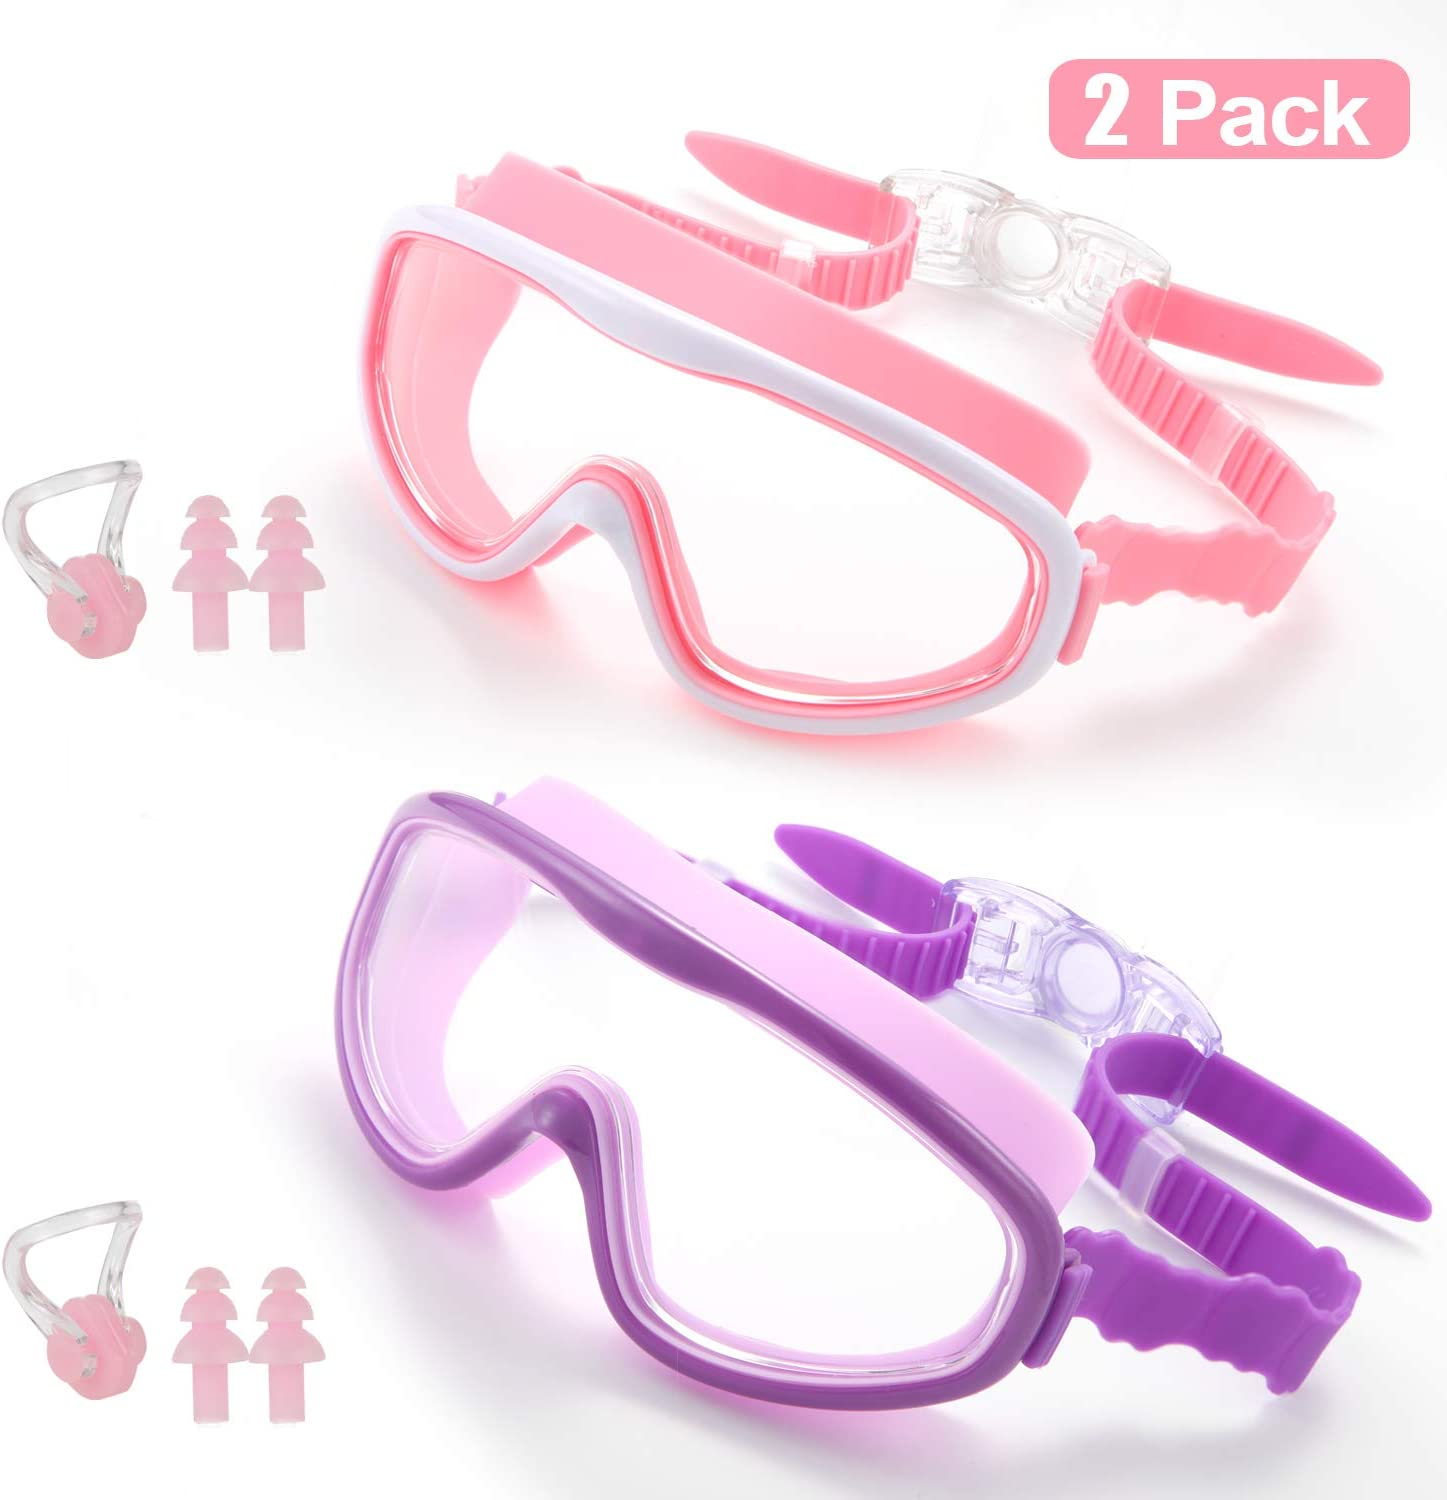 2 Pack Swimming Goggle for Kids Teen, No Leak Anti-Fog UV Protection Wide View